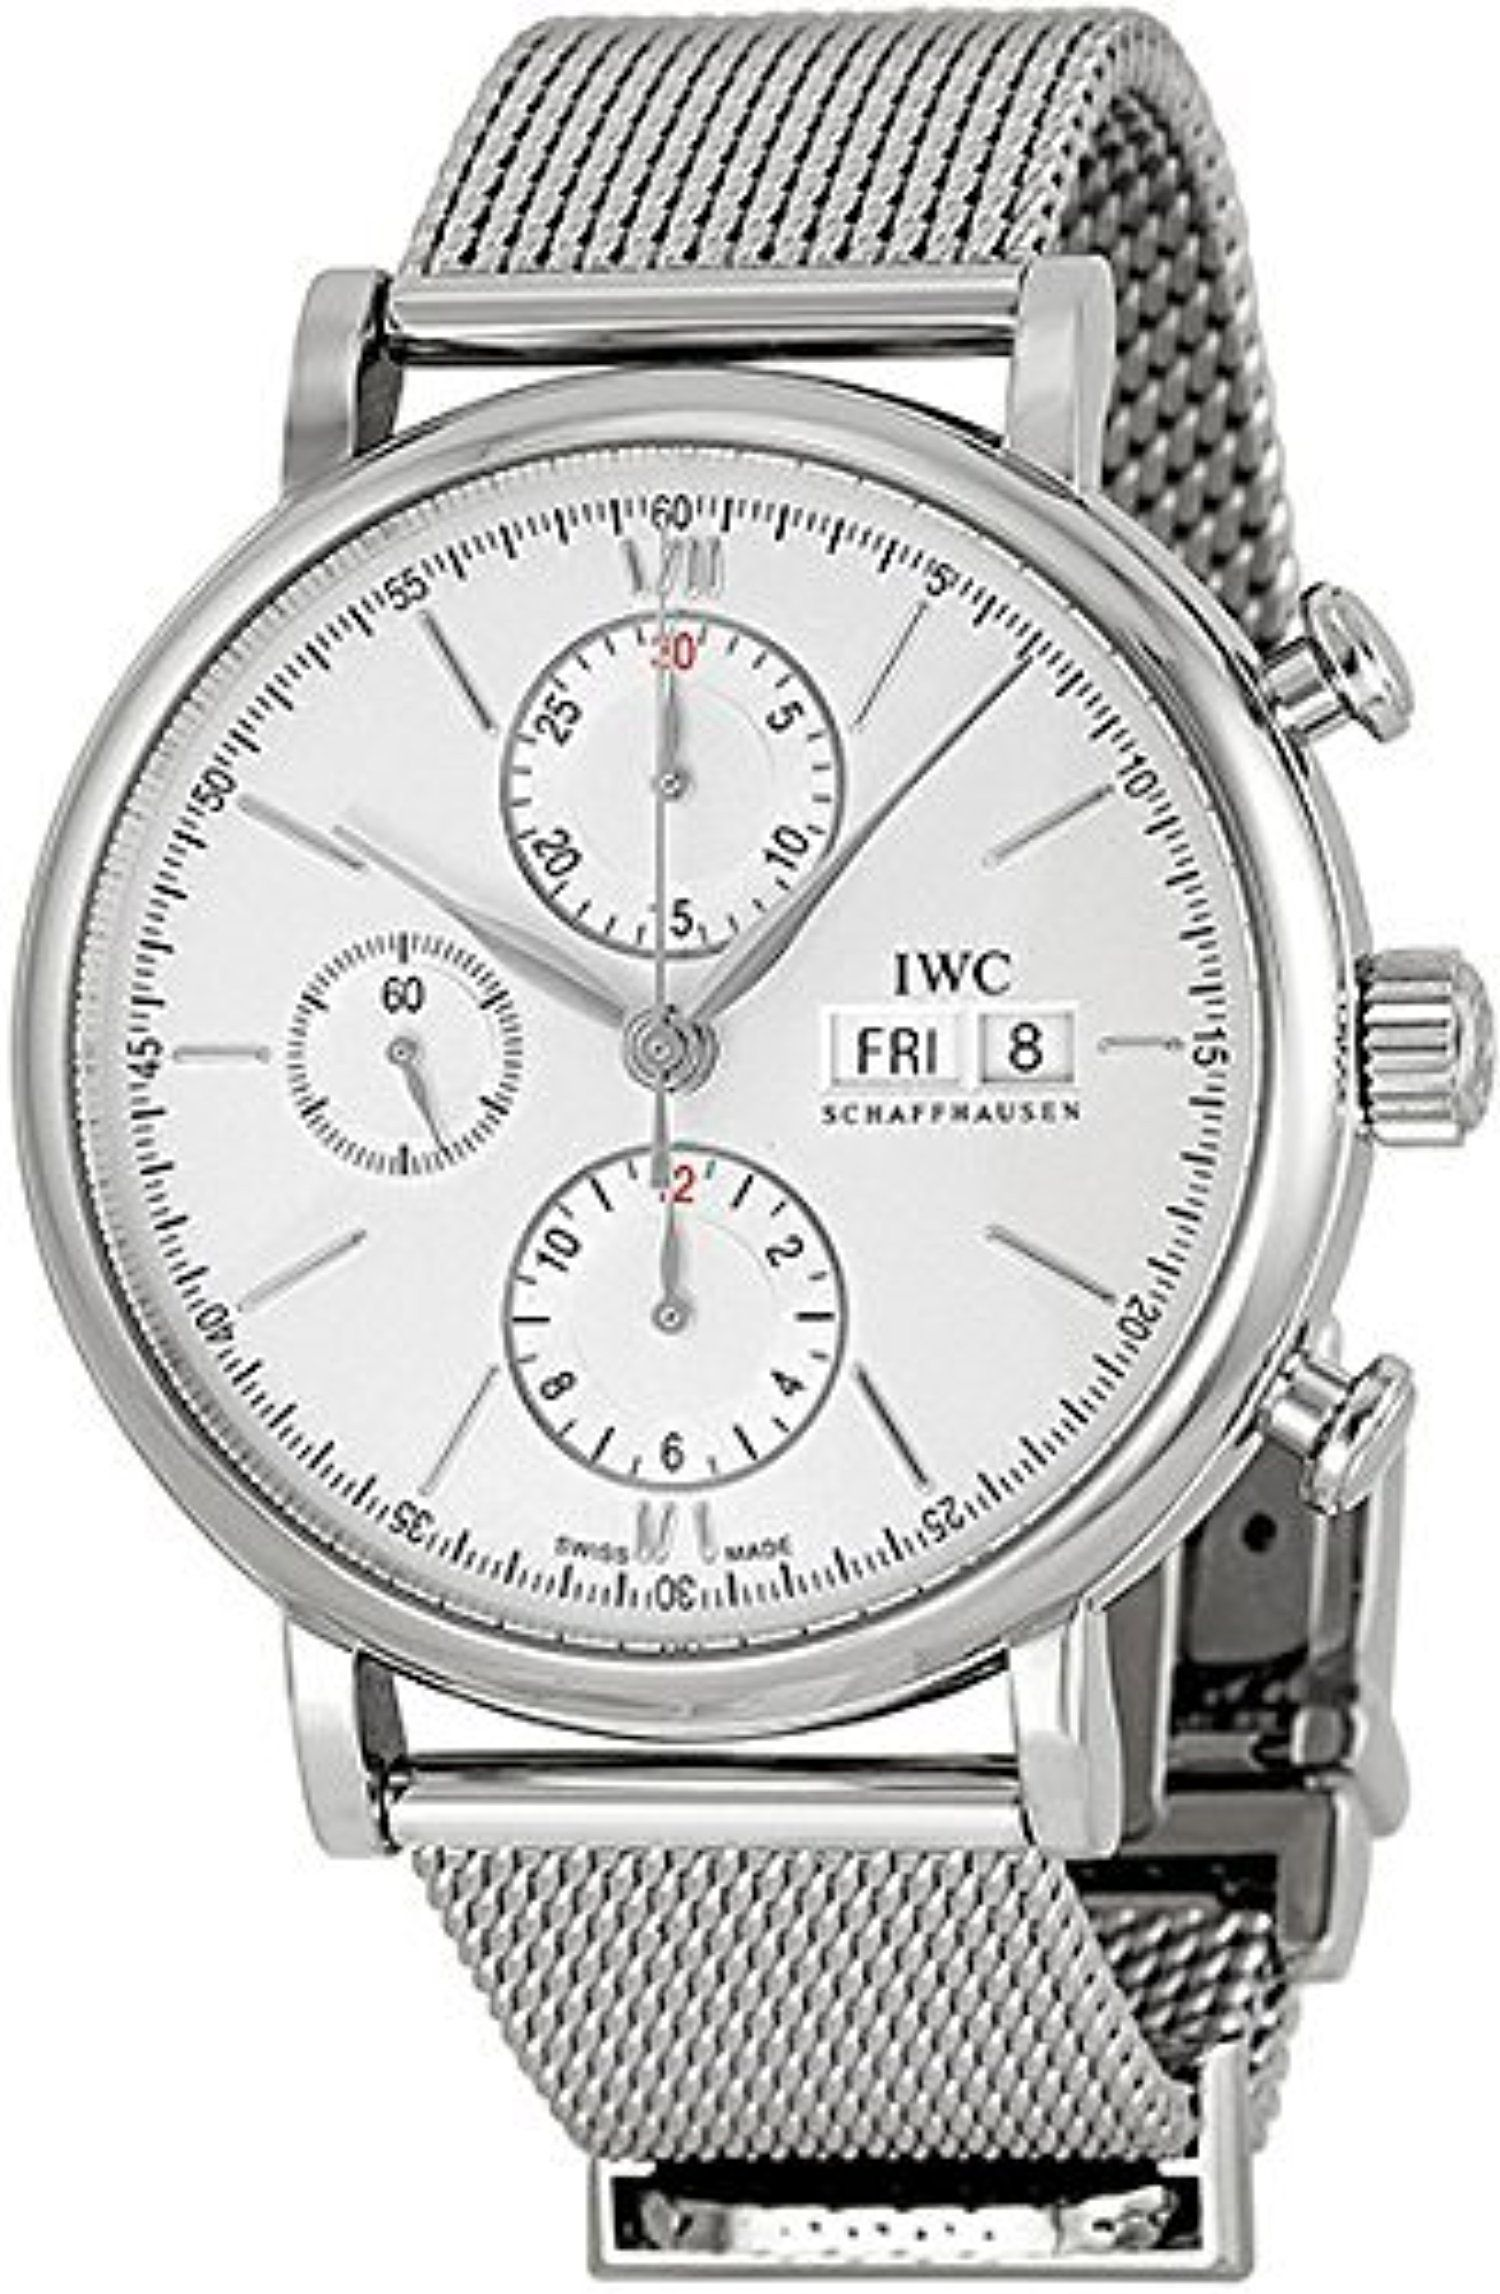 IWC Portofino Silver Plated Dial Stainless Steel Chronograph Mens Watch IW391009 by IWC -- Awesome products selected by Anna Churchill